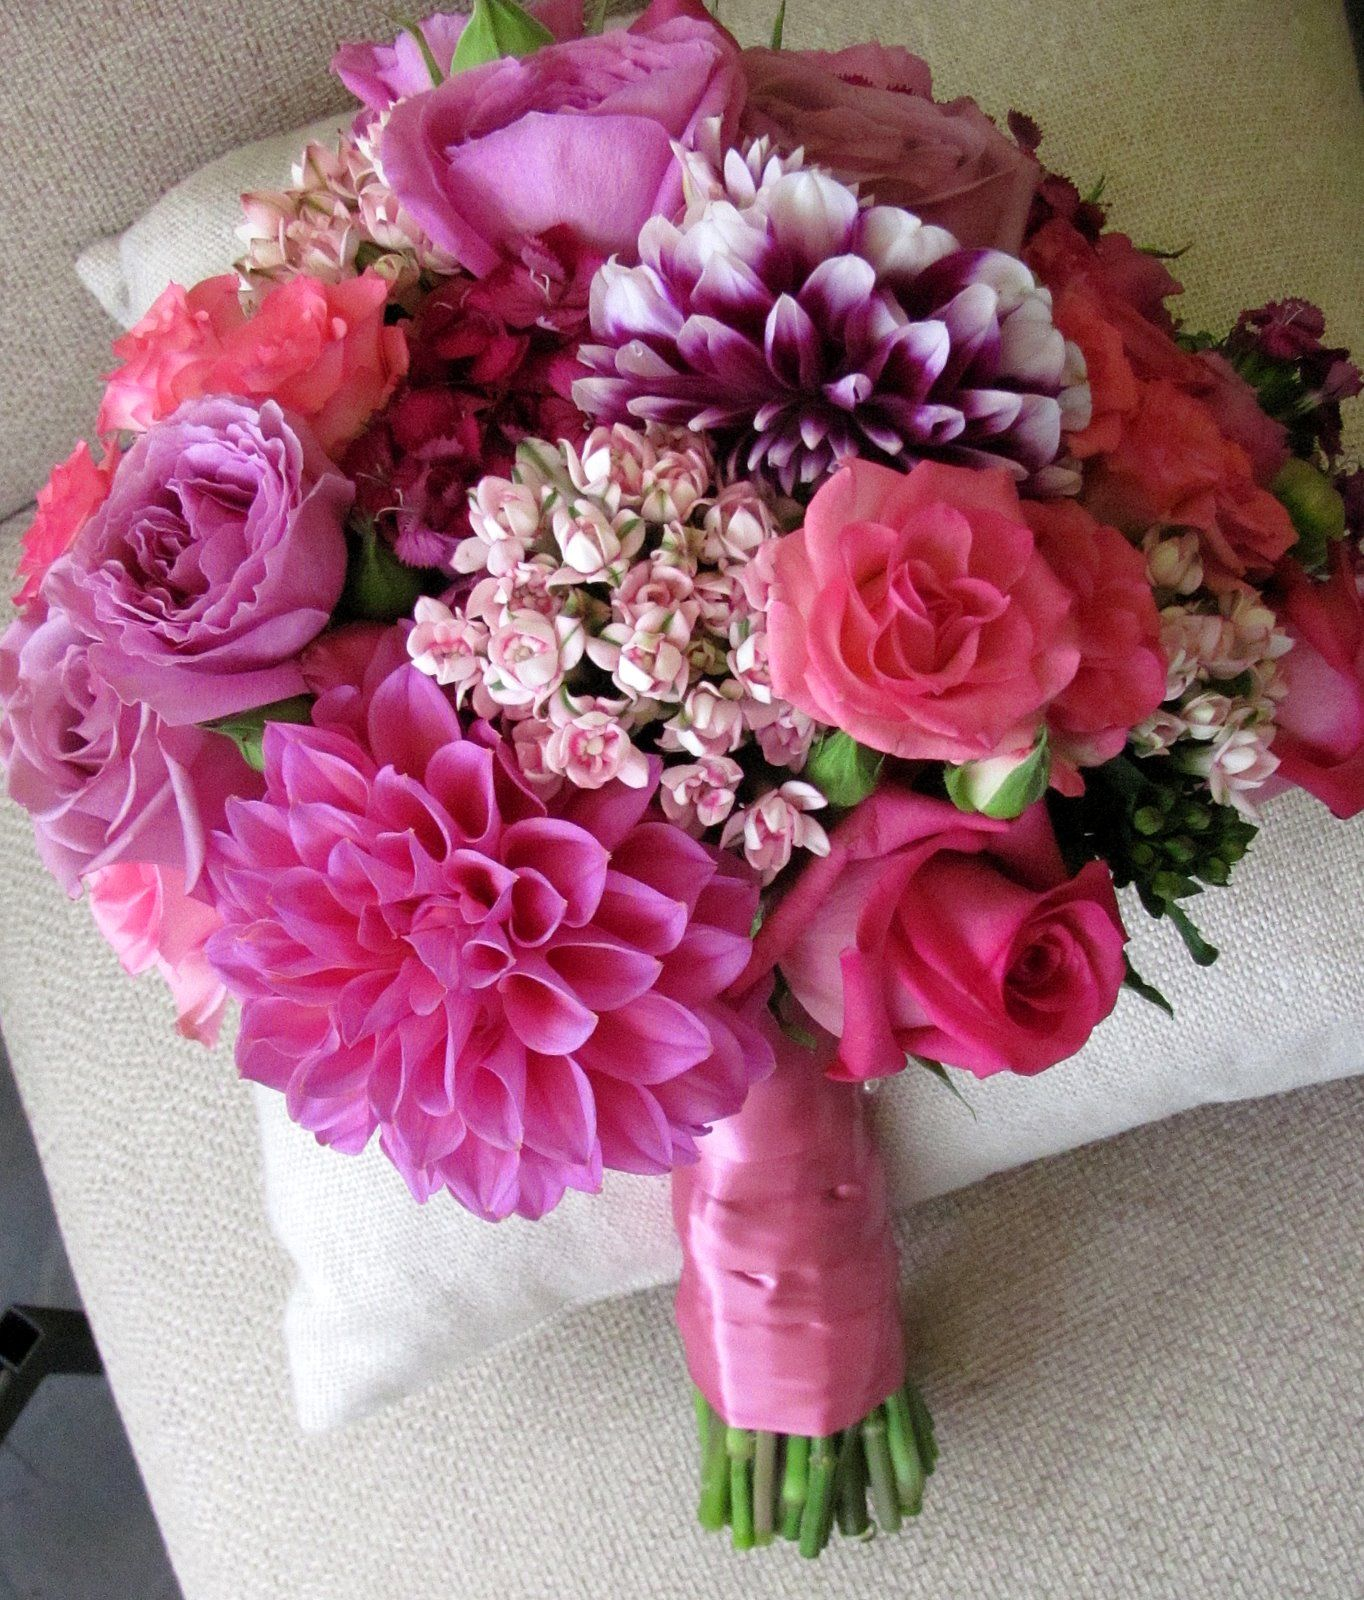 Purple And Pink Wedding Flowers: The Bride's Bouquet Featured